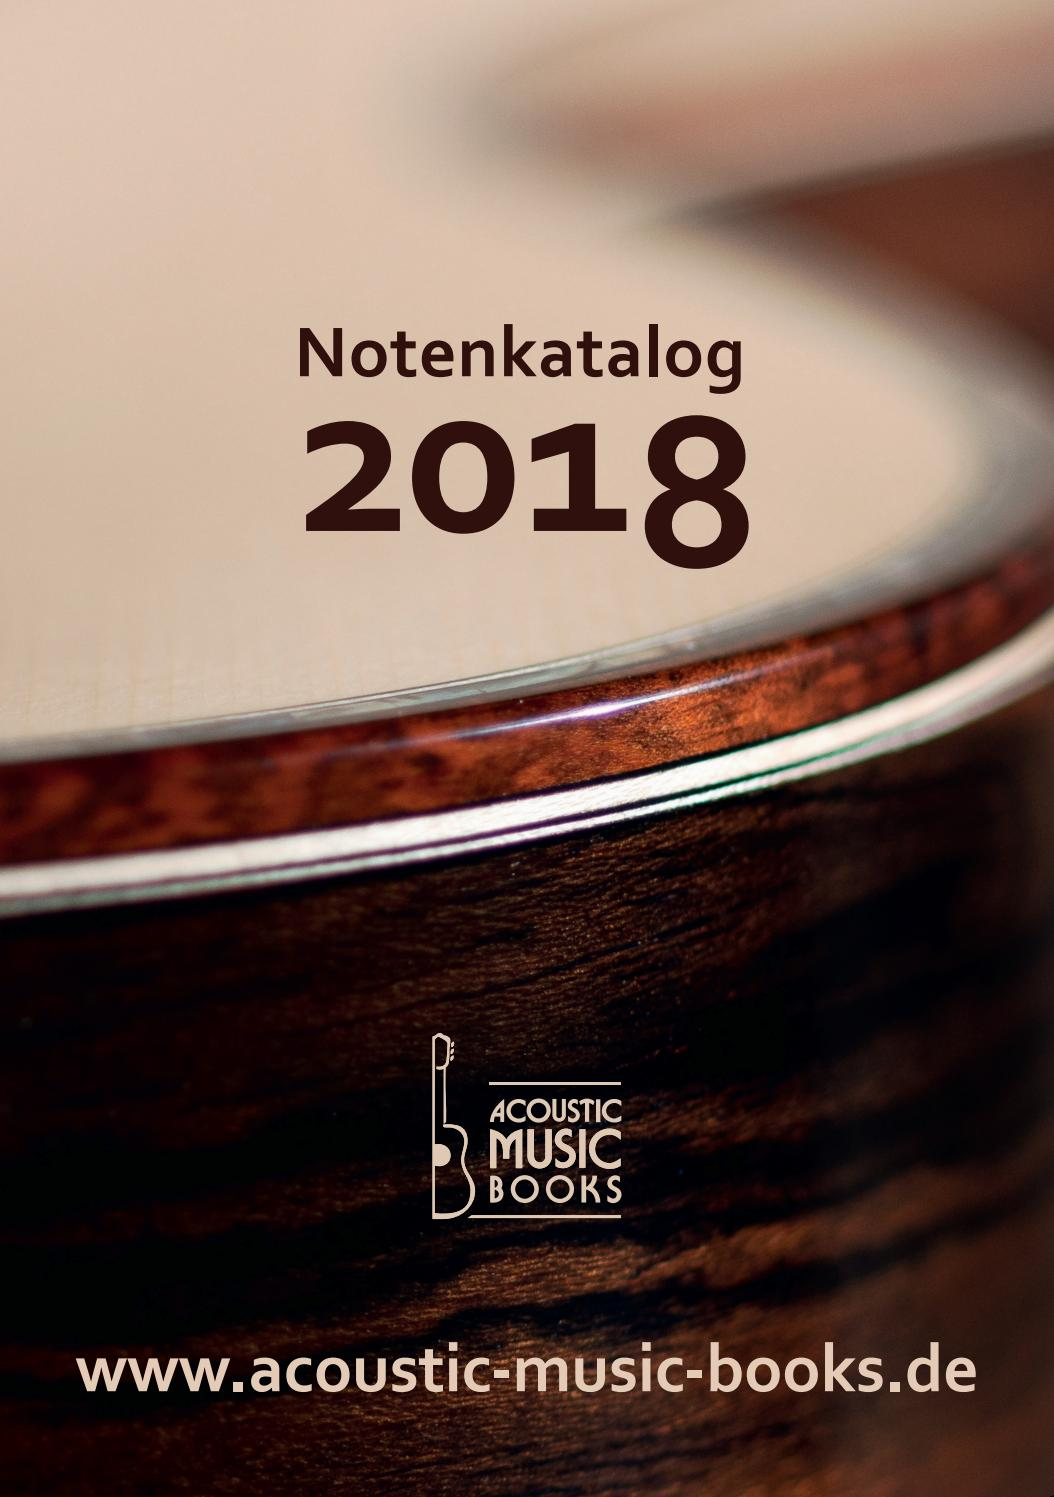 Early Dew 3031 Notenkatalog Acoustic Music Books 2018 By Timezone Records Issuu